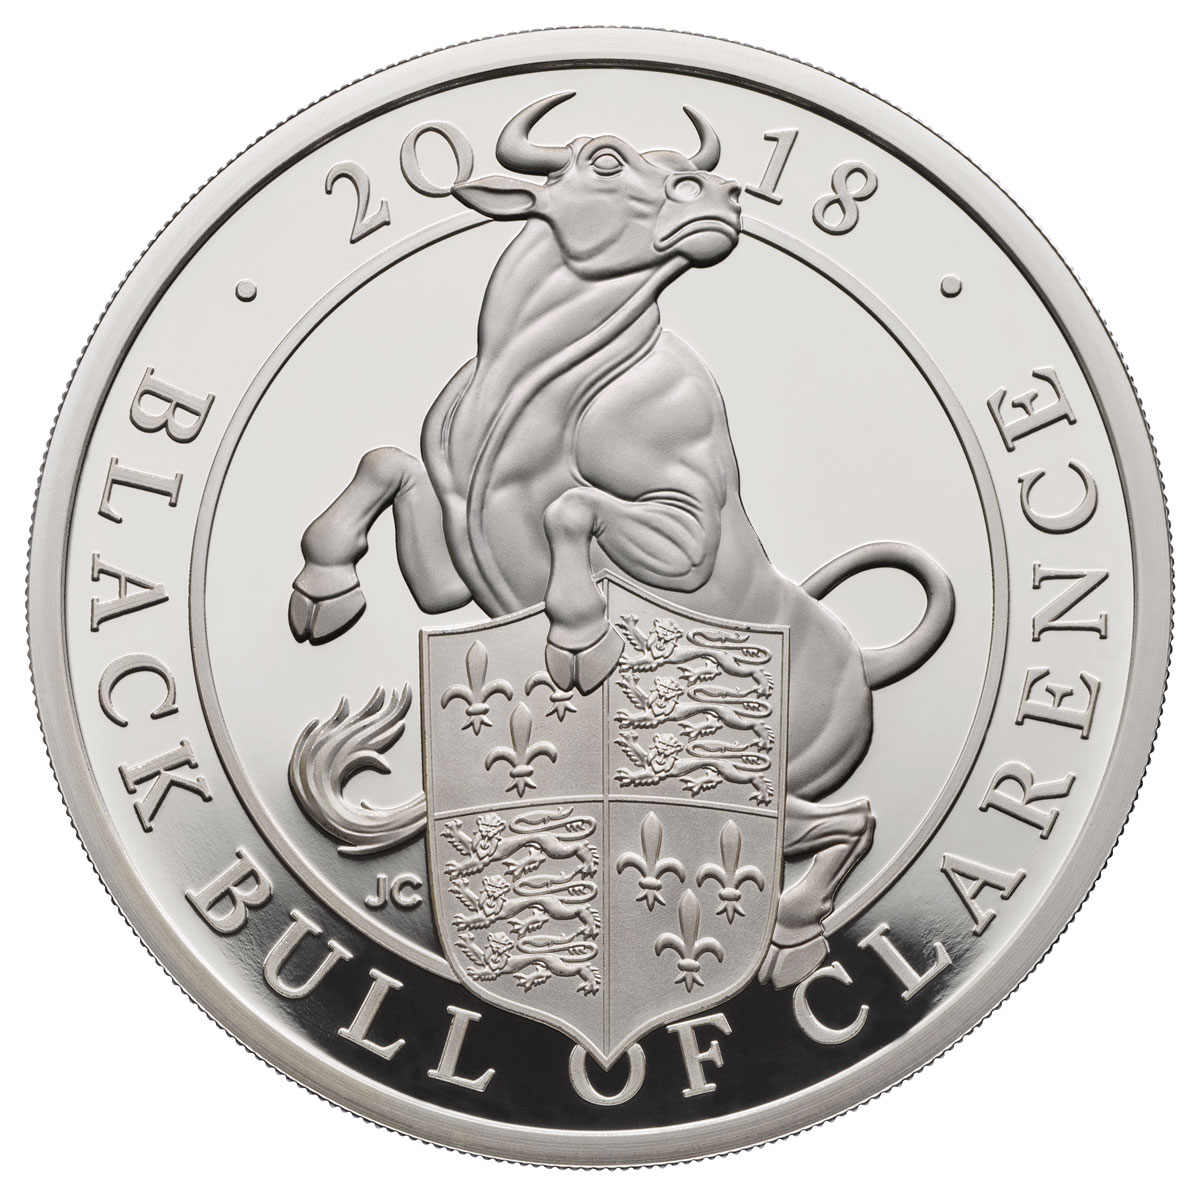 2018 Great Britain 1 oz Silver Queen's Beasts - The Black Bull of Clarence Proof £2 Coin GEM Proof OGP